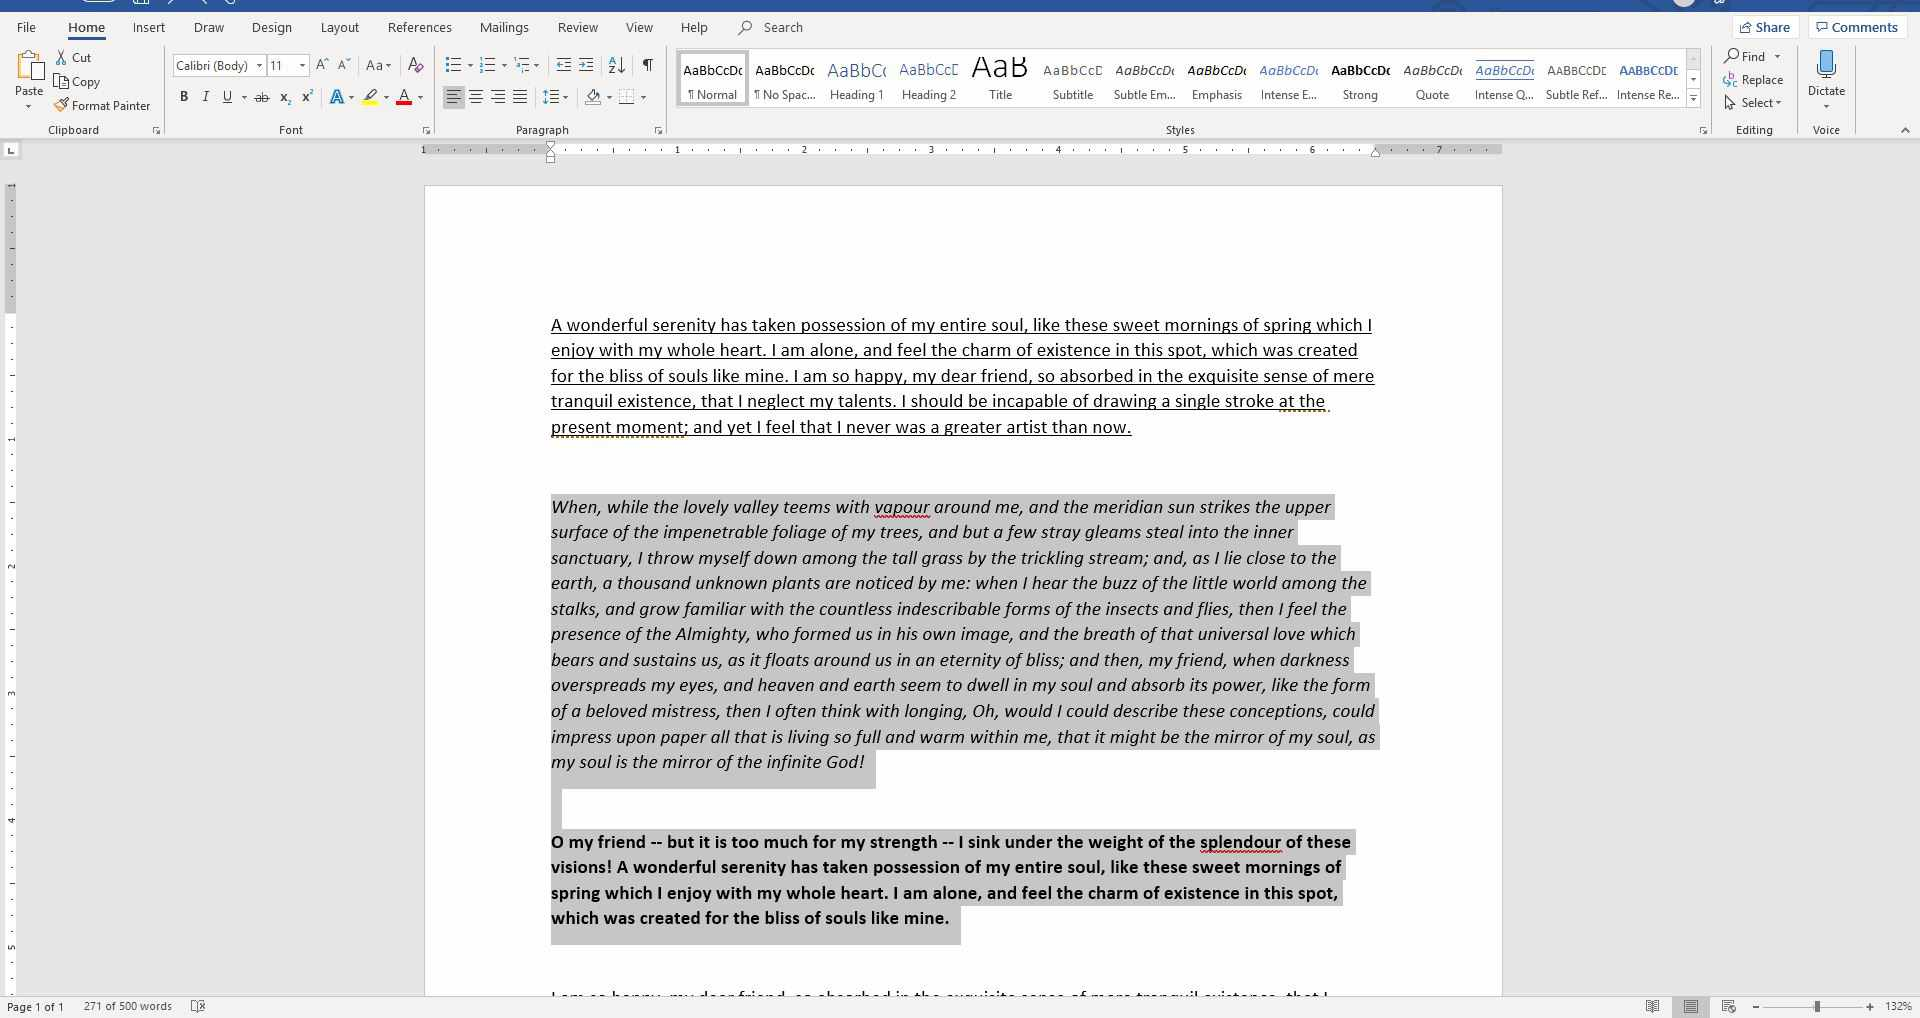 Screenshot of selected text in a Word document